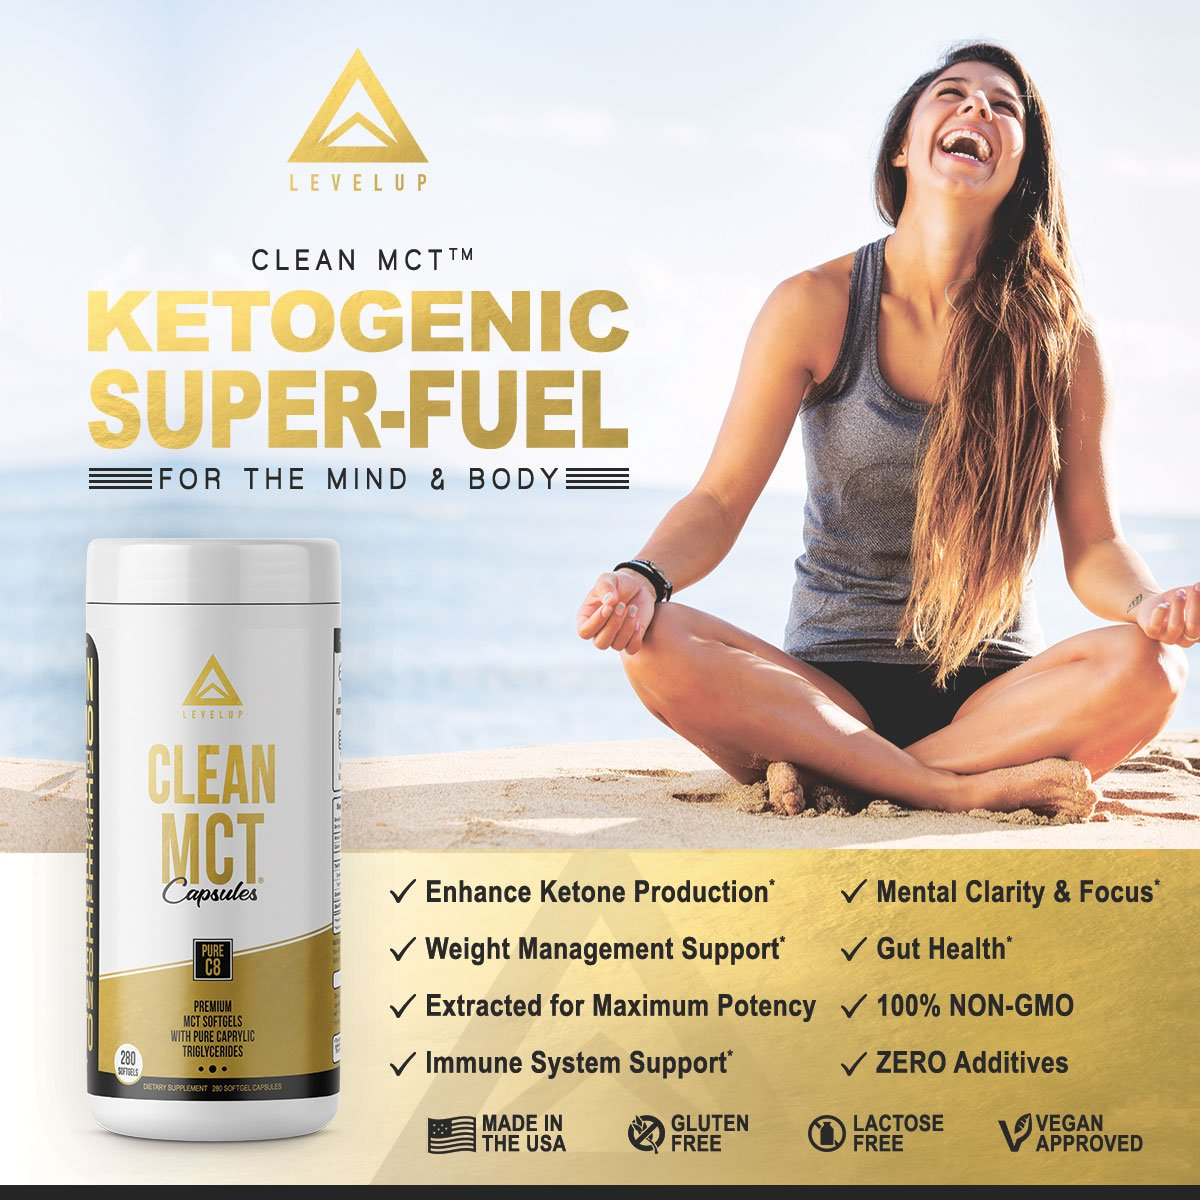 Clean MCT Capsules - Pure C8 MCT Oil Softgels - Highly Ketogenic Medium Chain Triglycerides - Instantly Converts into Ketones - Supports Ketosis - Cognitive Function - 1000mg Each by LevelUp (Image #4)